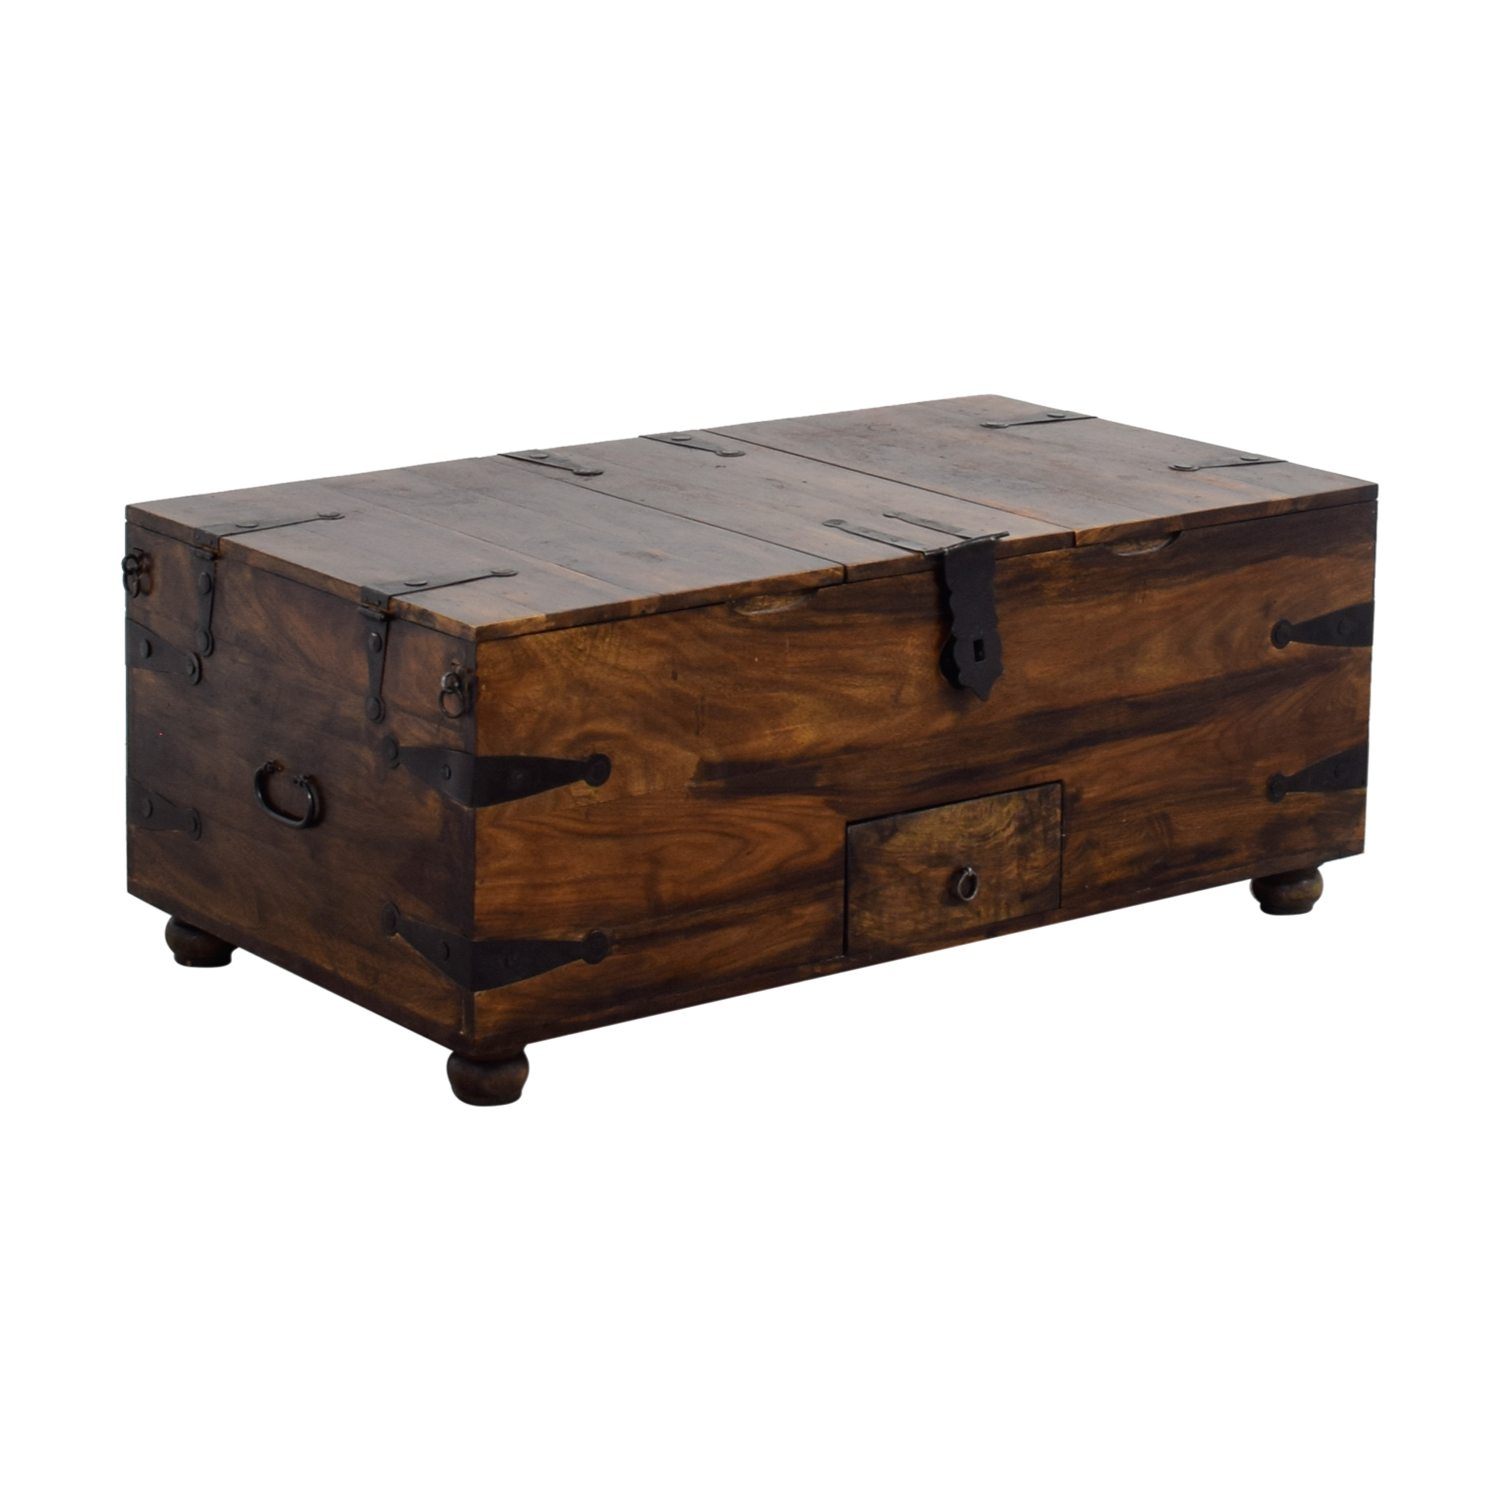 Crate And Barrel Black Marble Coffee Table: Crate And Barrel Crate & Barrel Chest Coffee